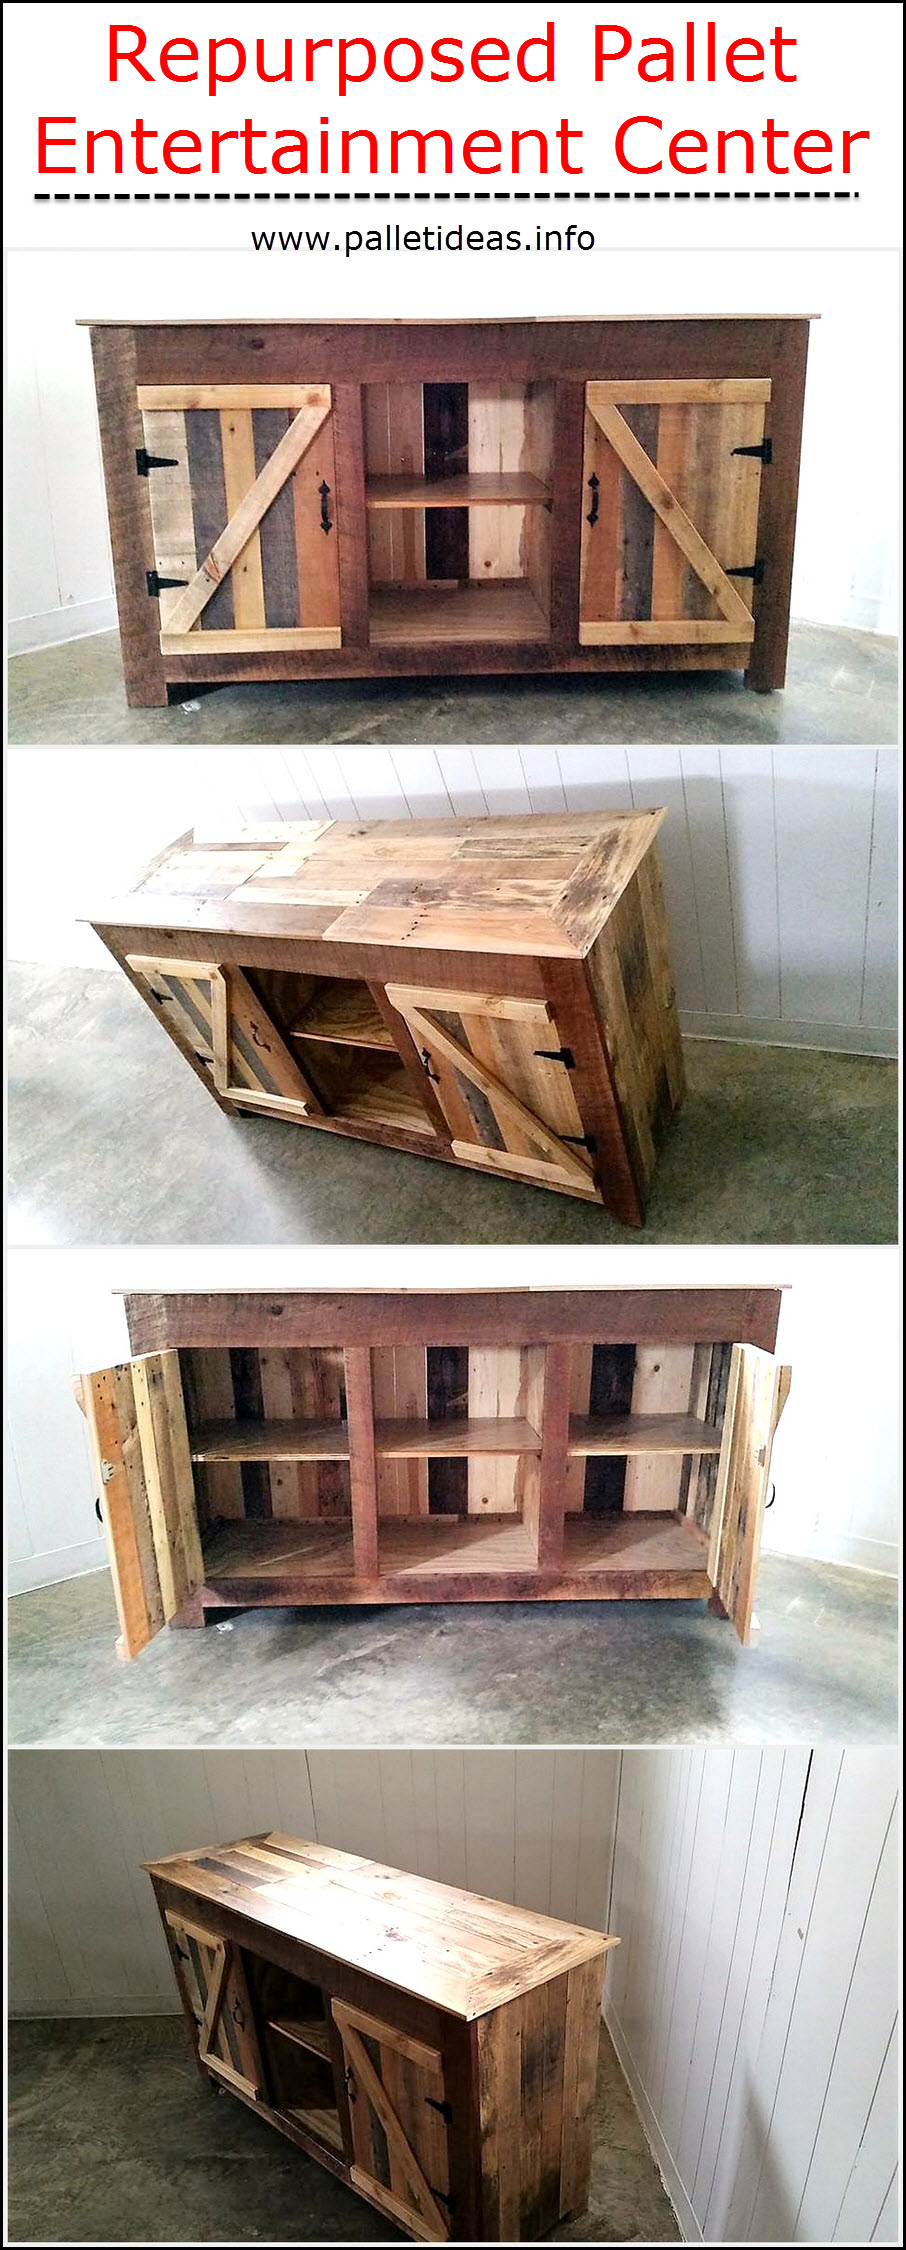 Repurposed pallet entertainment center pallet ideas for Repurposed pallet projects